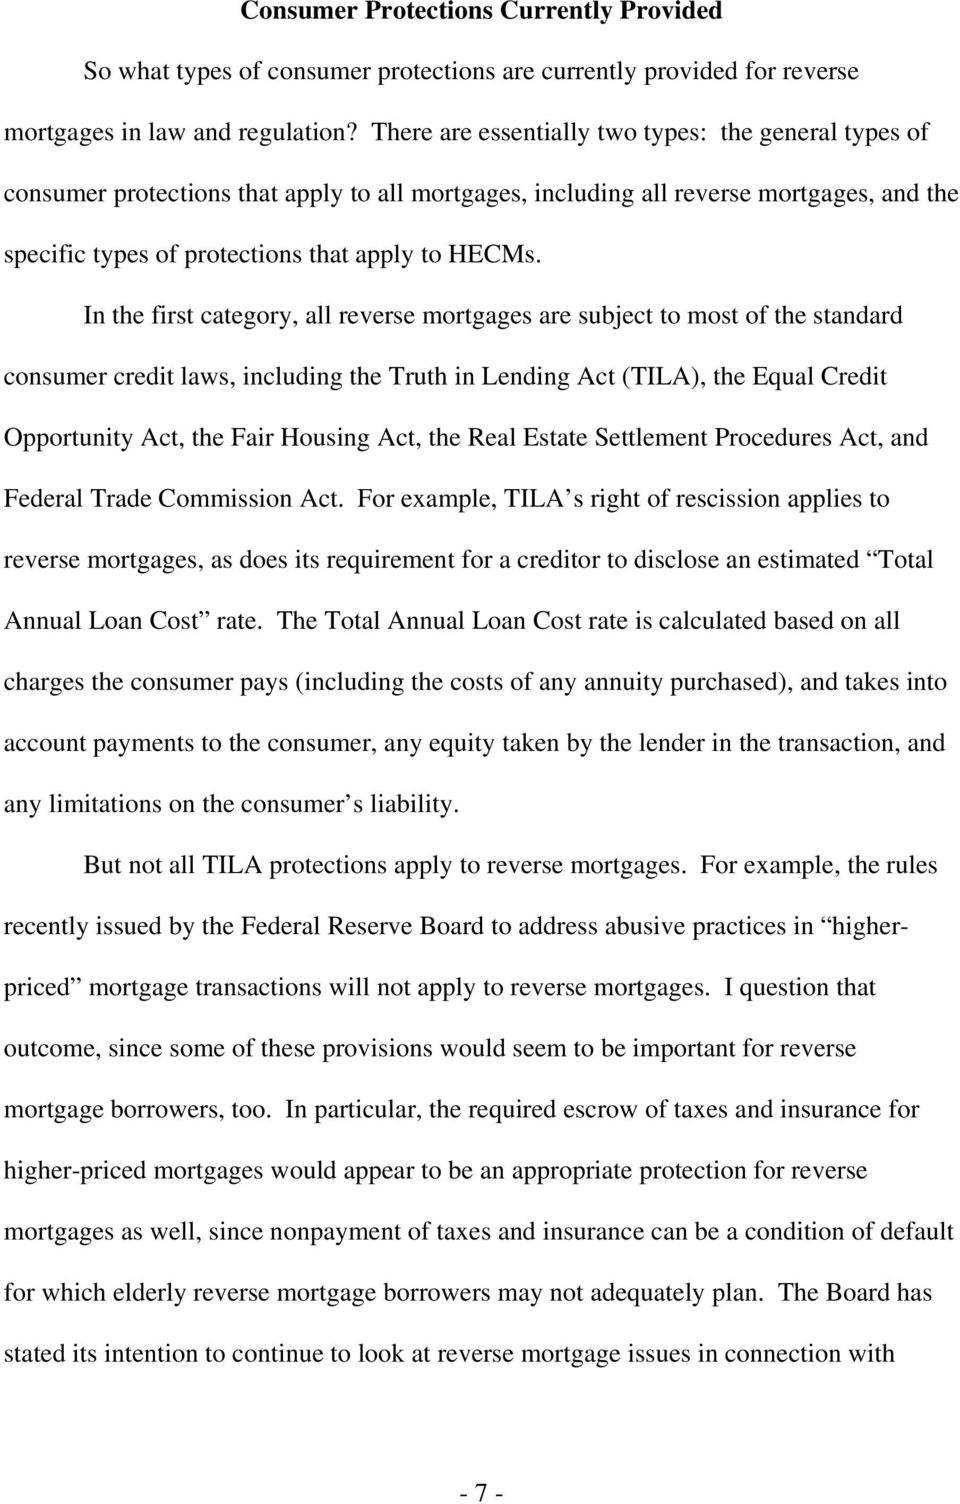 In the first category, all reverse mortgages are subject to most of the standard consumer credit laws, including the Truth in Lending Act (TILA), the Equal Credit Opportunity Act, the Fair Housing